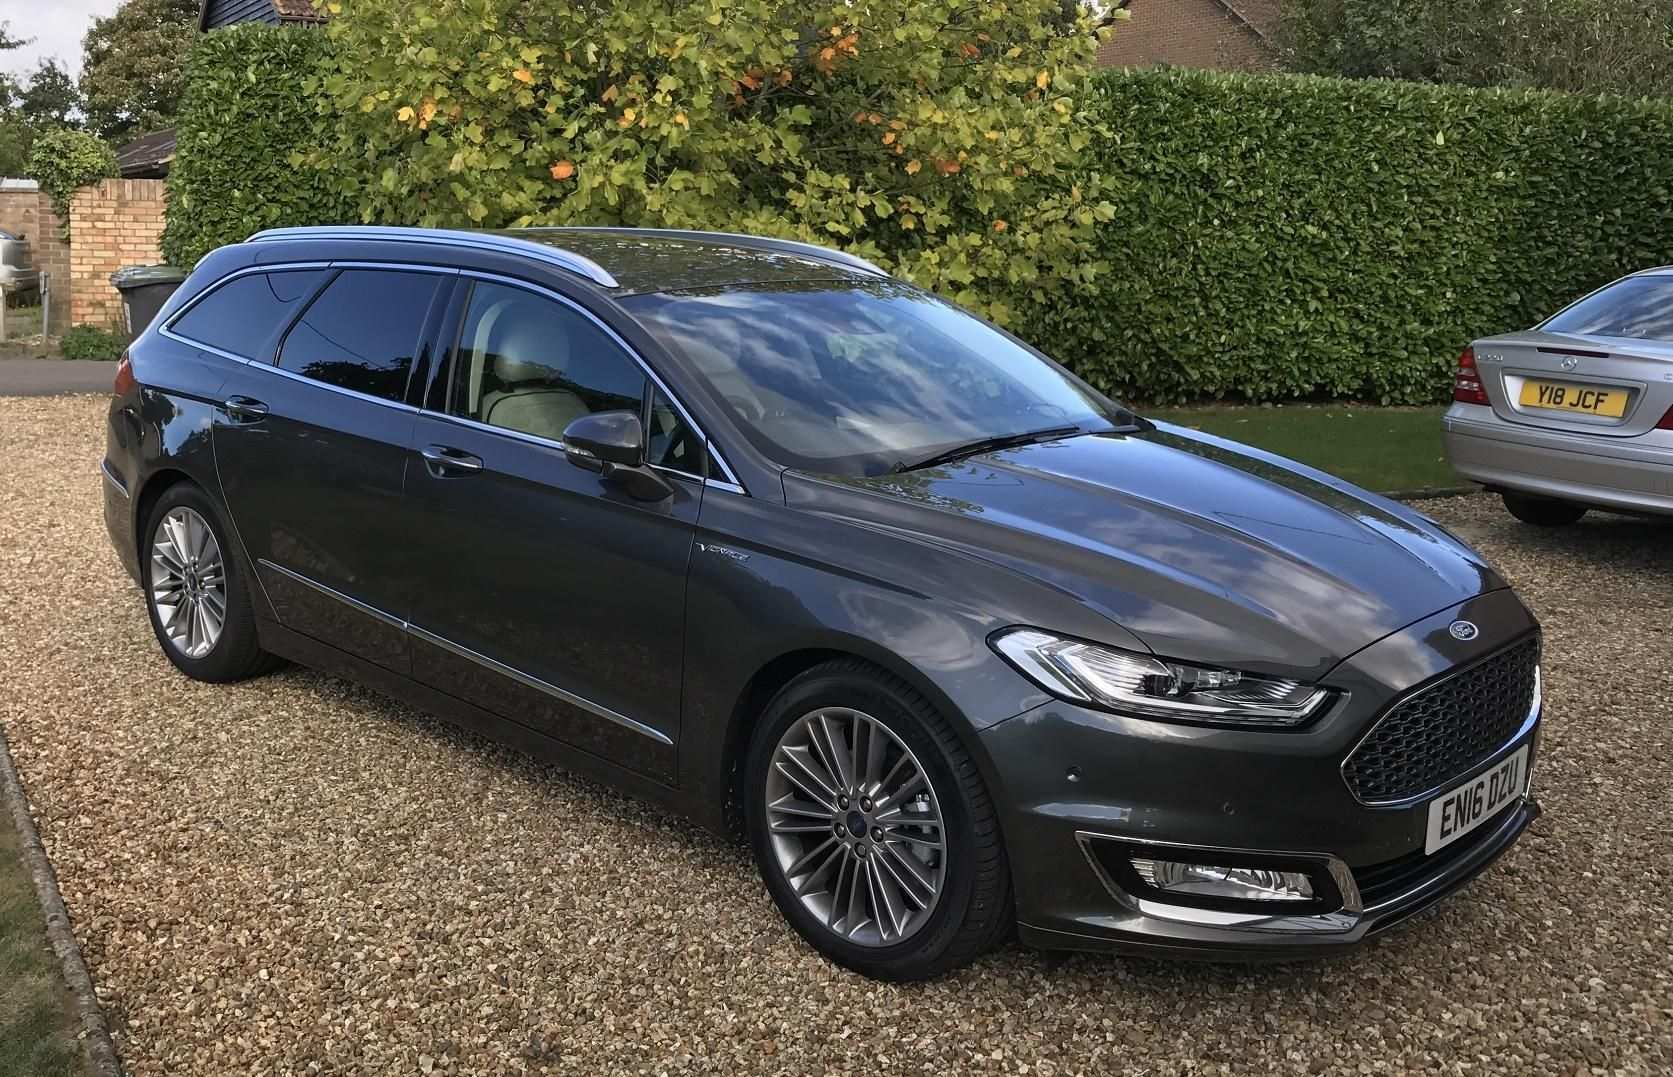 90 Best Review 2019 Ford Mondeo Vignale Photos with 2019 Ford Mondeo Vignale